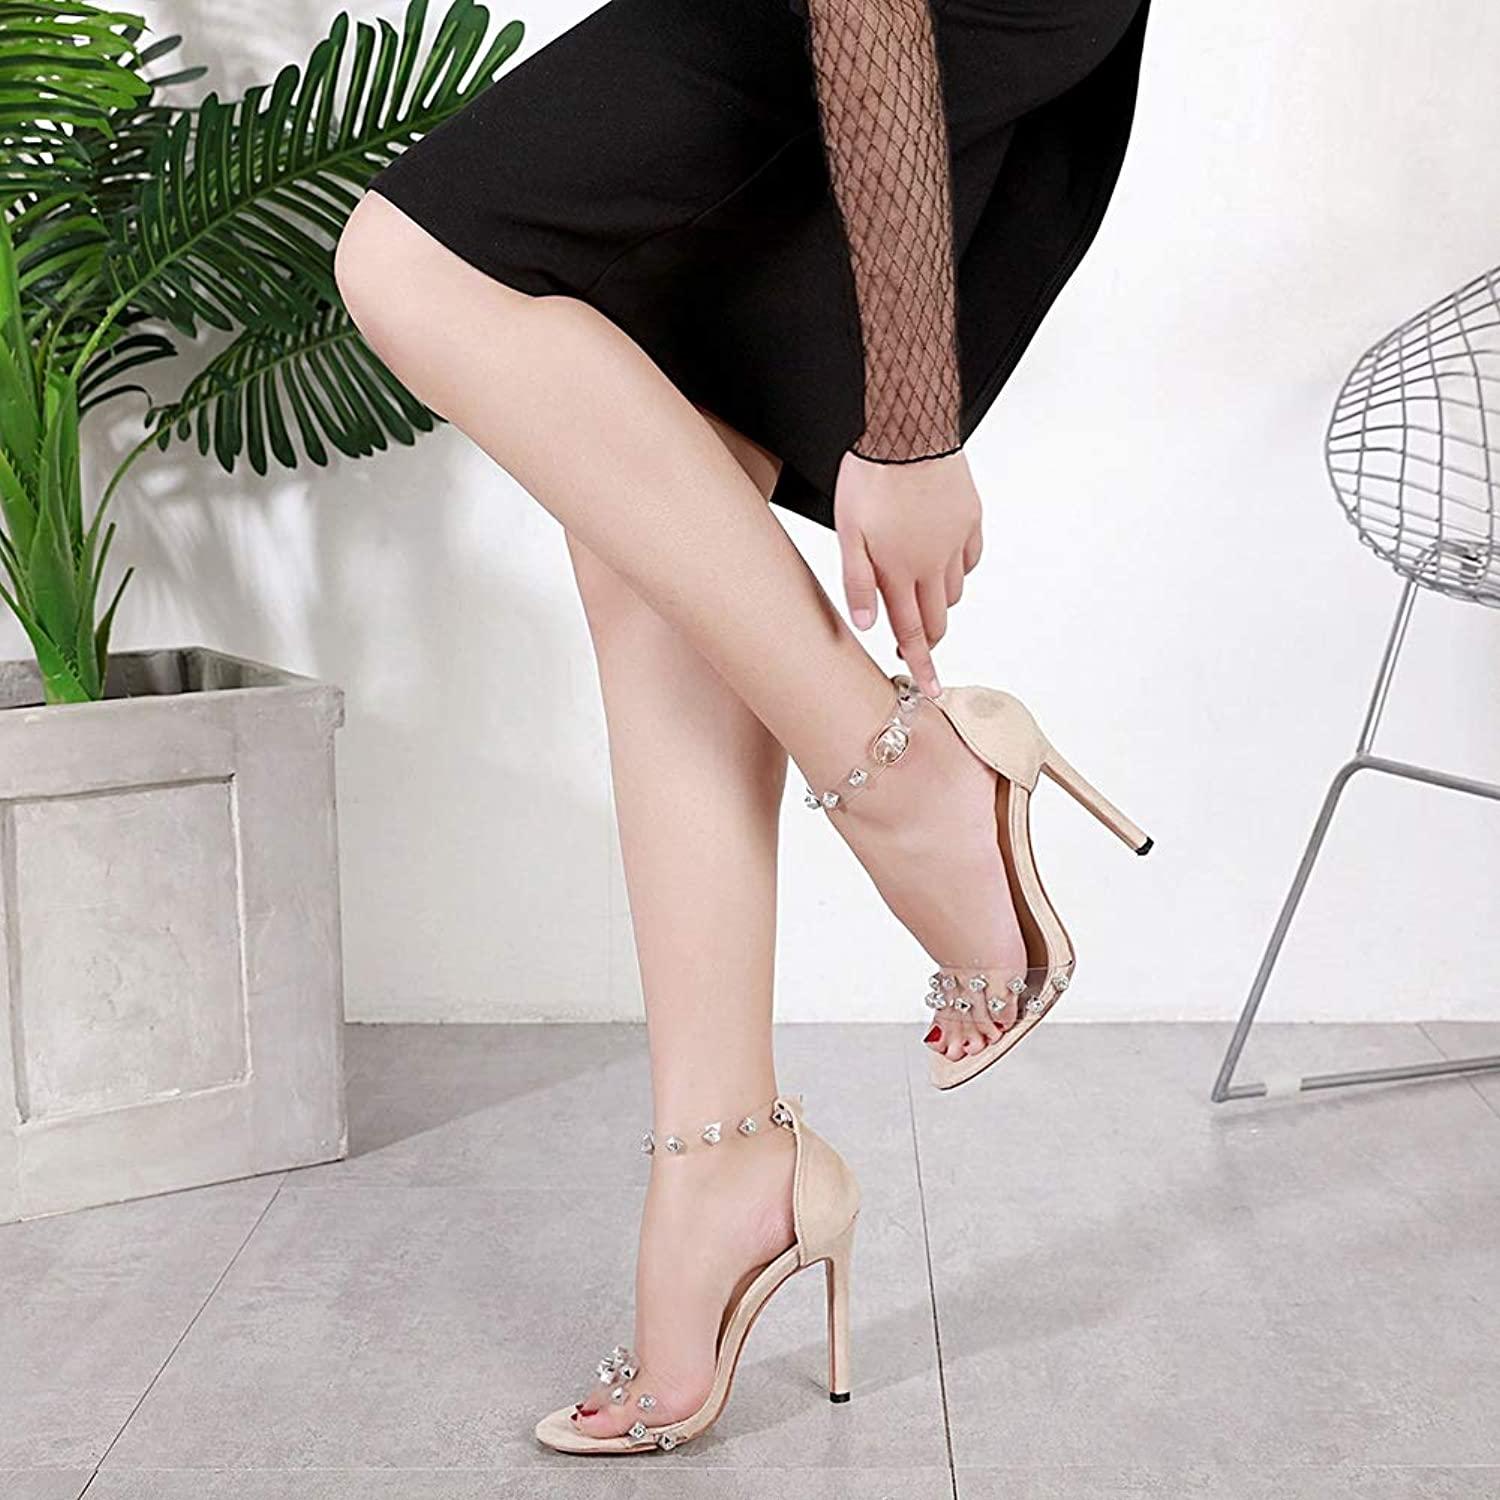 Women's Sandals with A Rivet Female High Heel Women's shoes Open Toe Slip Breathable Lining Comfortable Women's High Heel Sandals,Apricot,35